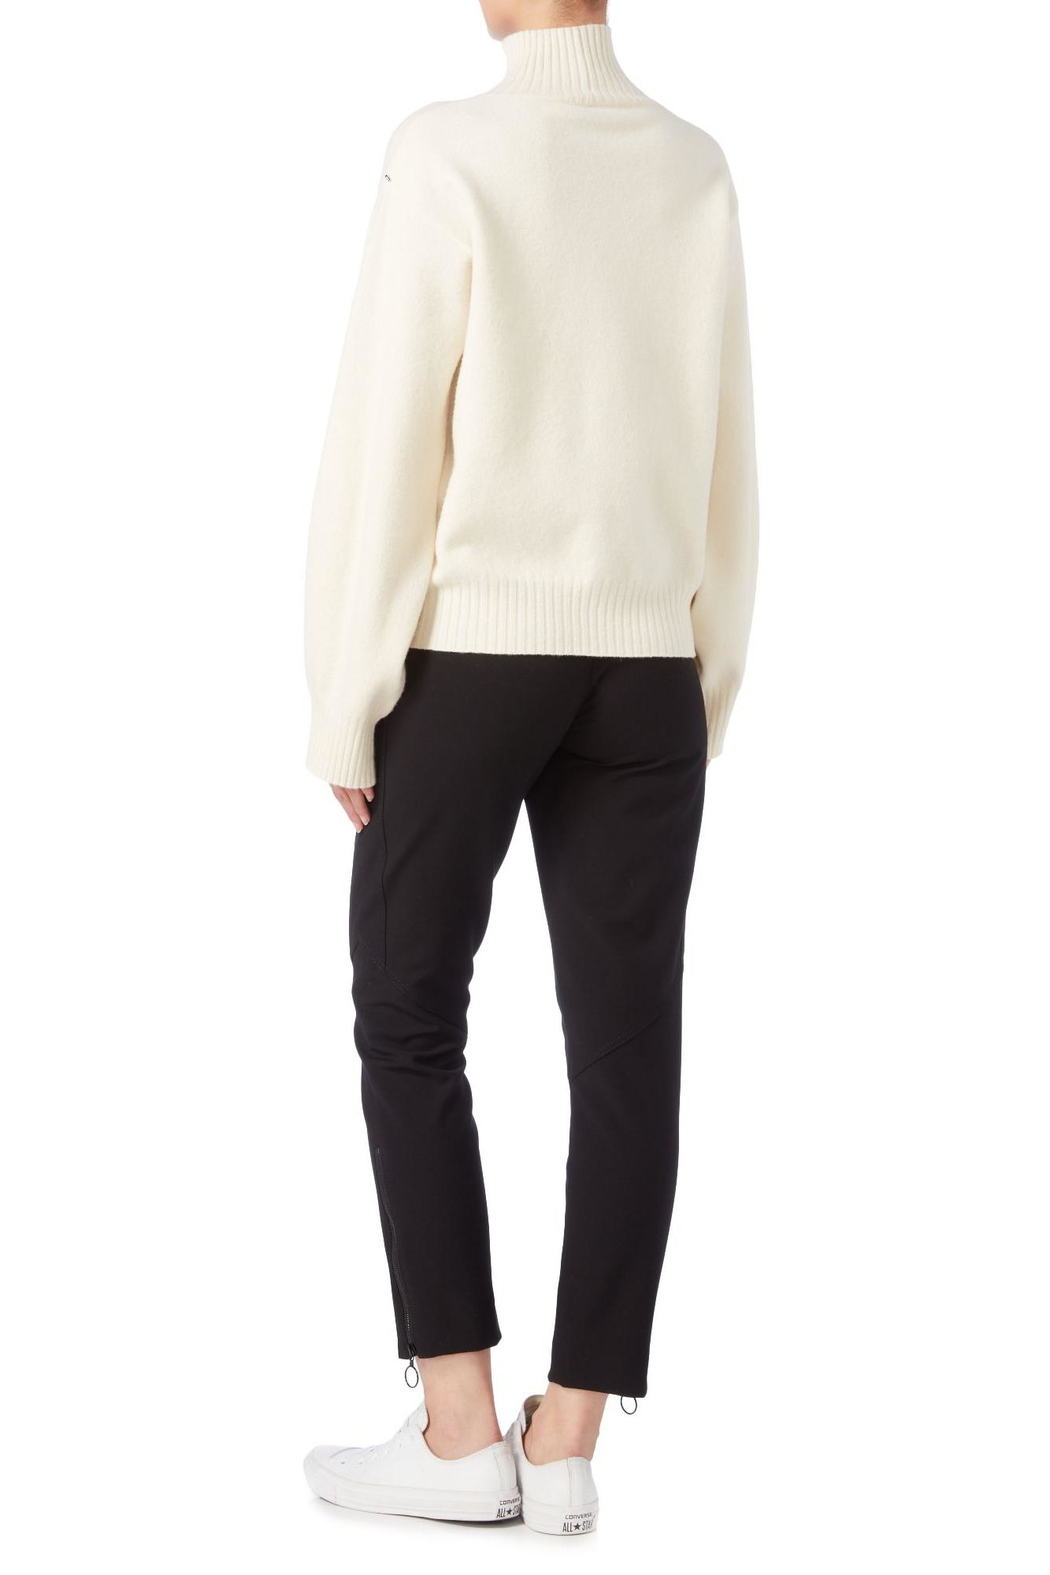 Sportmax Rasoio Floral Sweater - Side Cropped Image